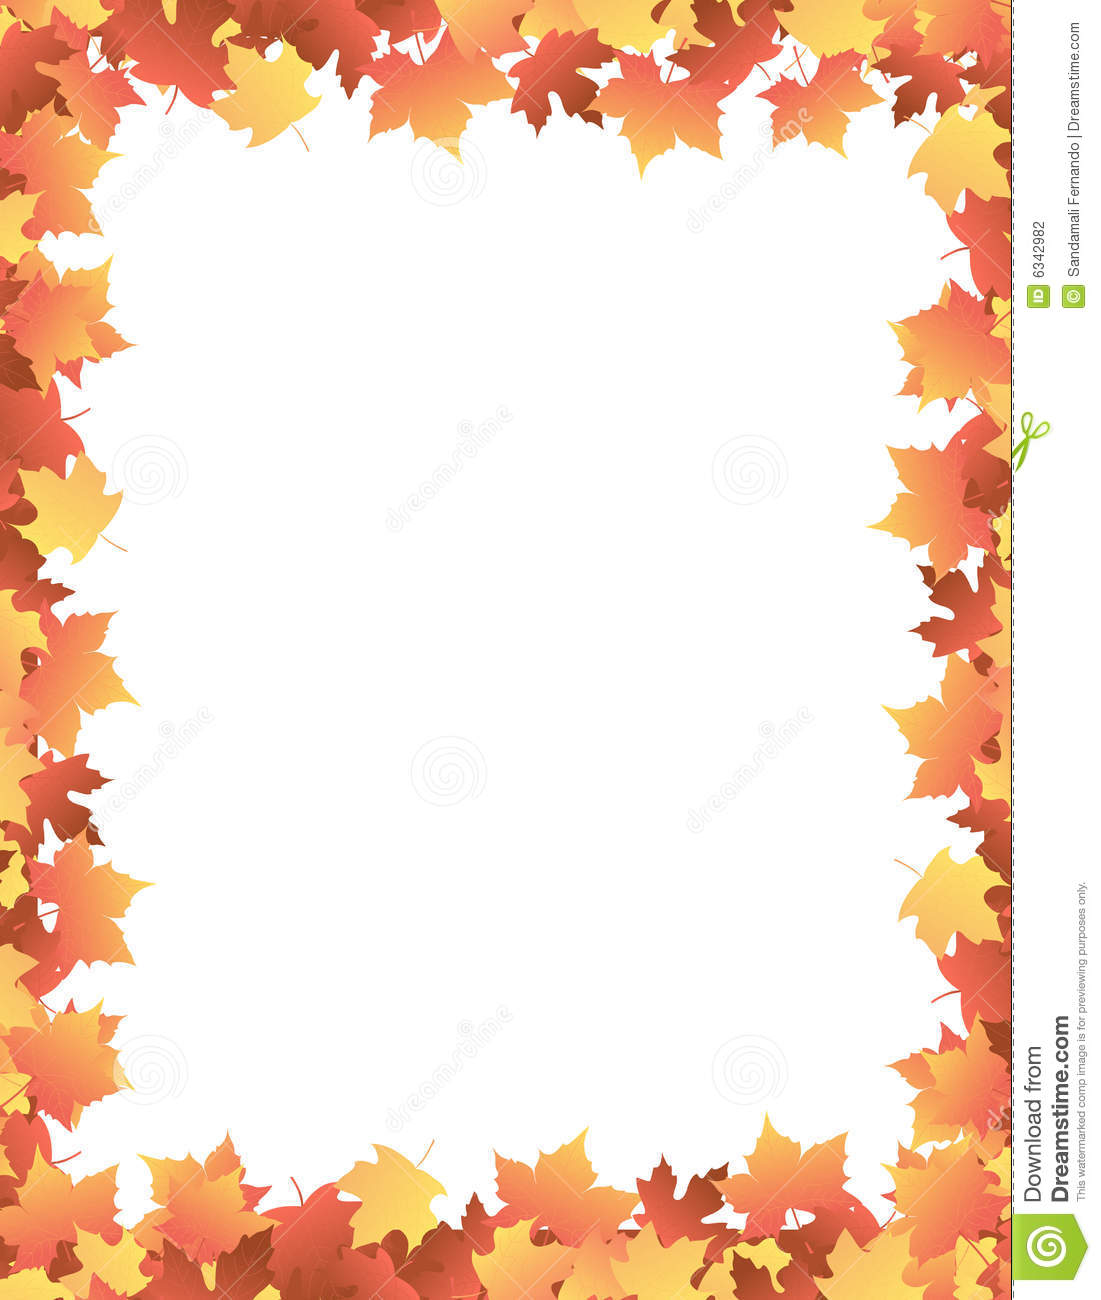 Bonfire Clipart At Getdrawings Com Free For - Fire Pictures Clip Art PNG  Image | Transparent PNG Free Download on SeekPNG